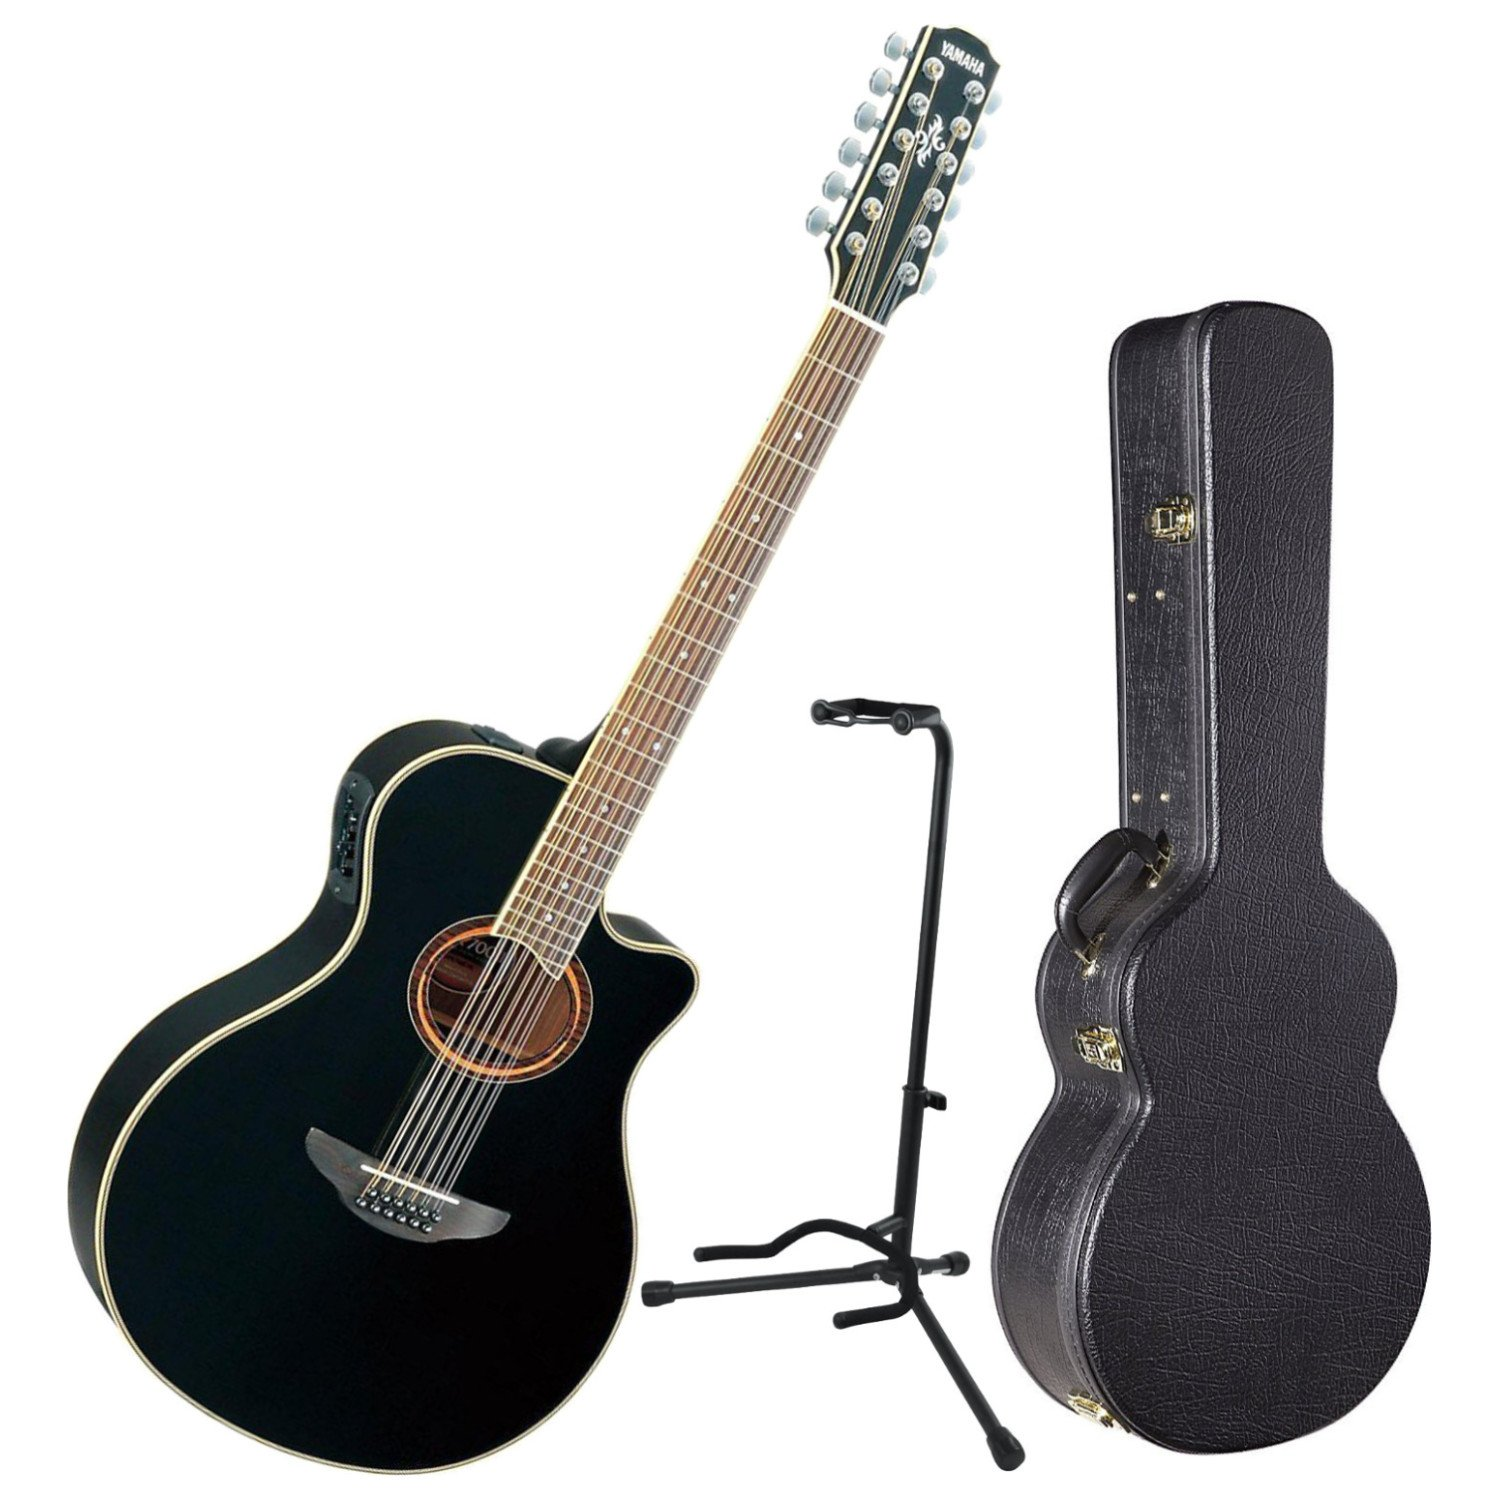 Amazon.com: Yamaha APX700II 12 String Acoustic Electric Thinline Guitar Black w/ Hard Case and Stand: Musical Instruments